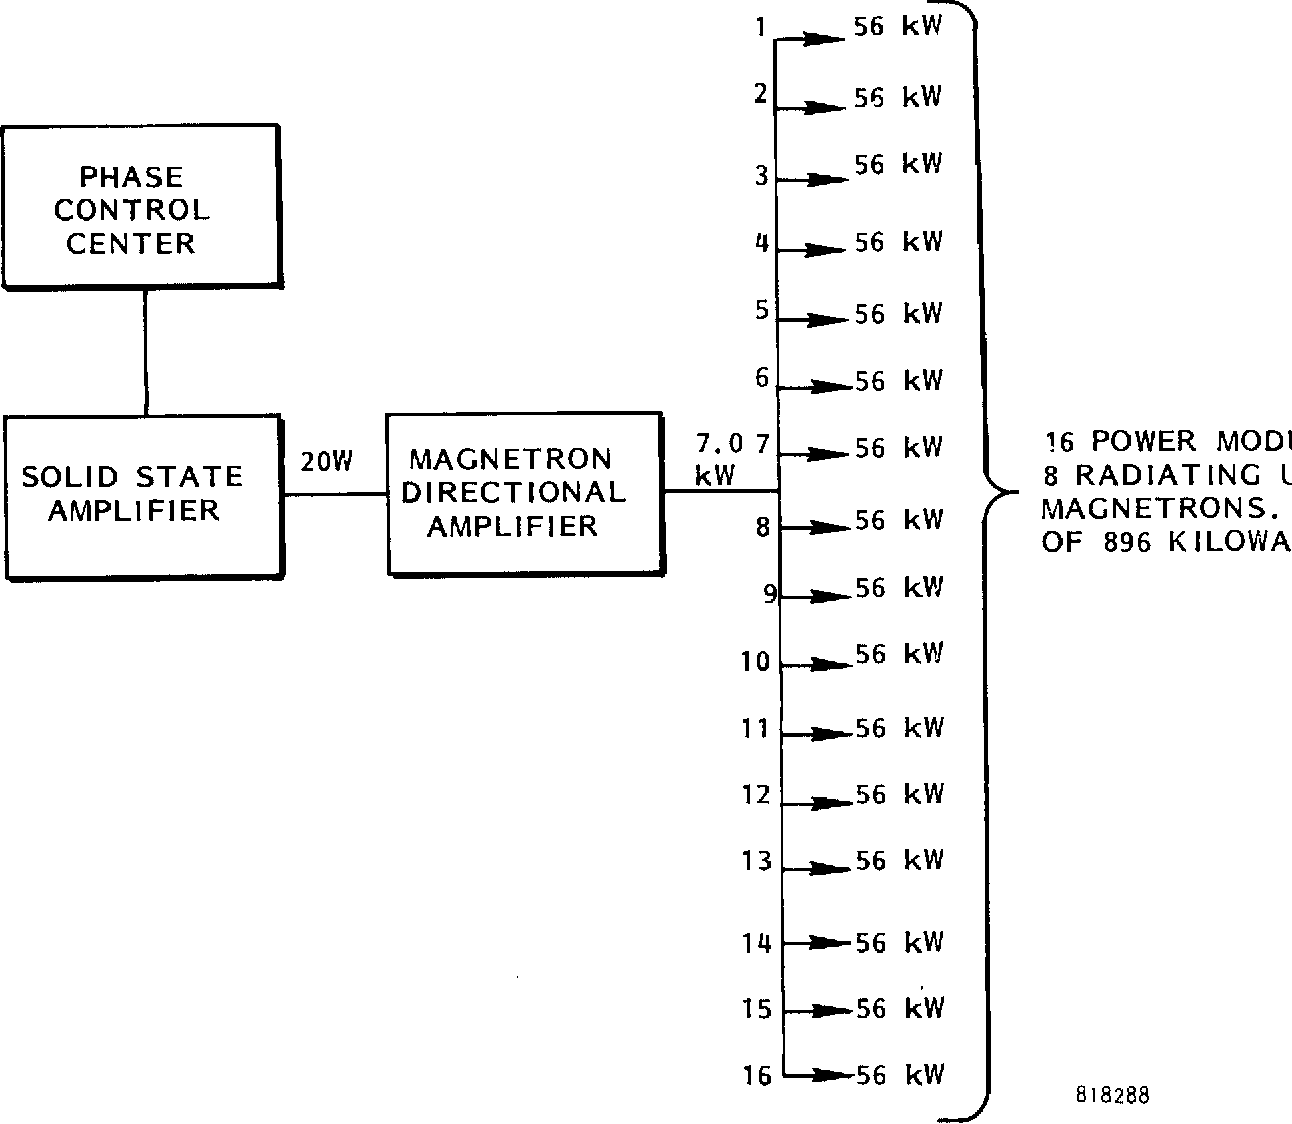 Figure 4-4 from Satellite Power System (SPS) magnetron tube ... on ammeter schematic, diode schematic, parts schematic, door schematic, magneto schematic, light schematic, capacitor schematic, compressor schematic, tube schematic, control panel schematic, radar schematic, lcd schematic, oven schematic, transistor schematic, spring schematic, solenoid schematic, receiver schematic, power schematic, lamp schematic, transducer schematic,